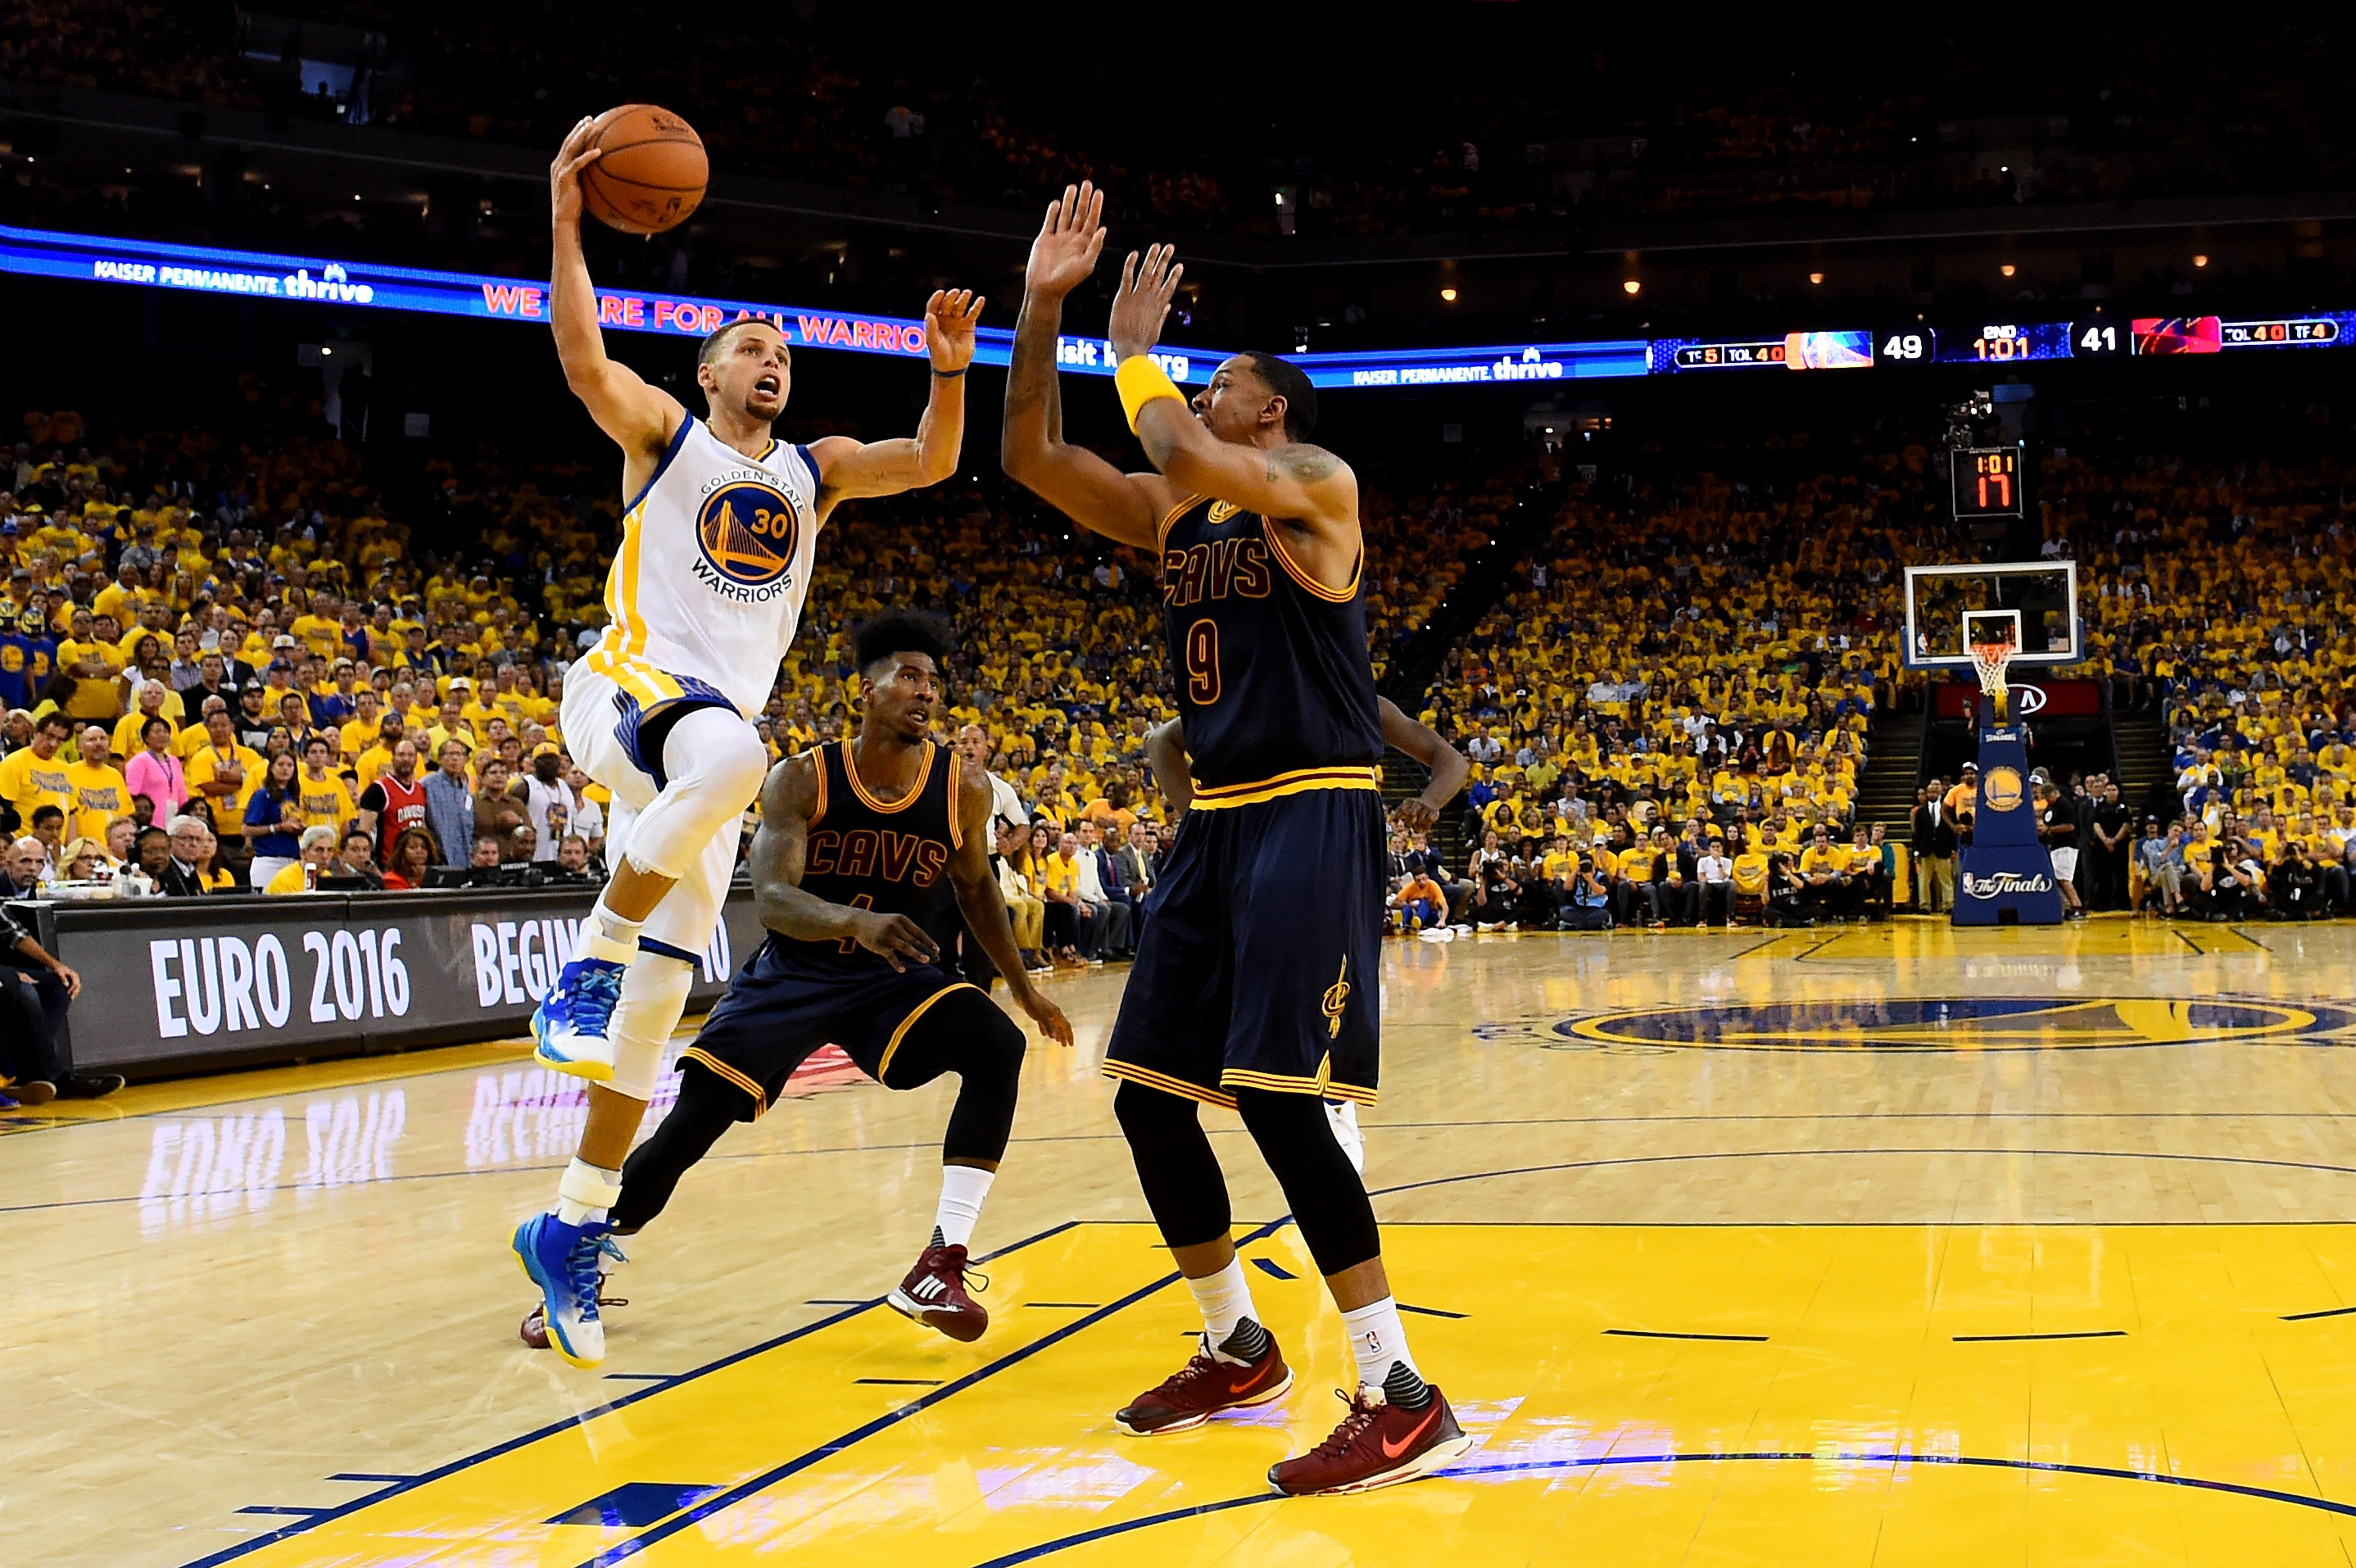 In stopping the Splash Brothers, the Cavaliers forgot the basics